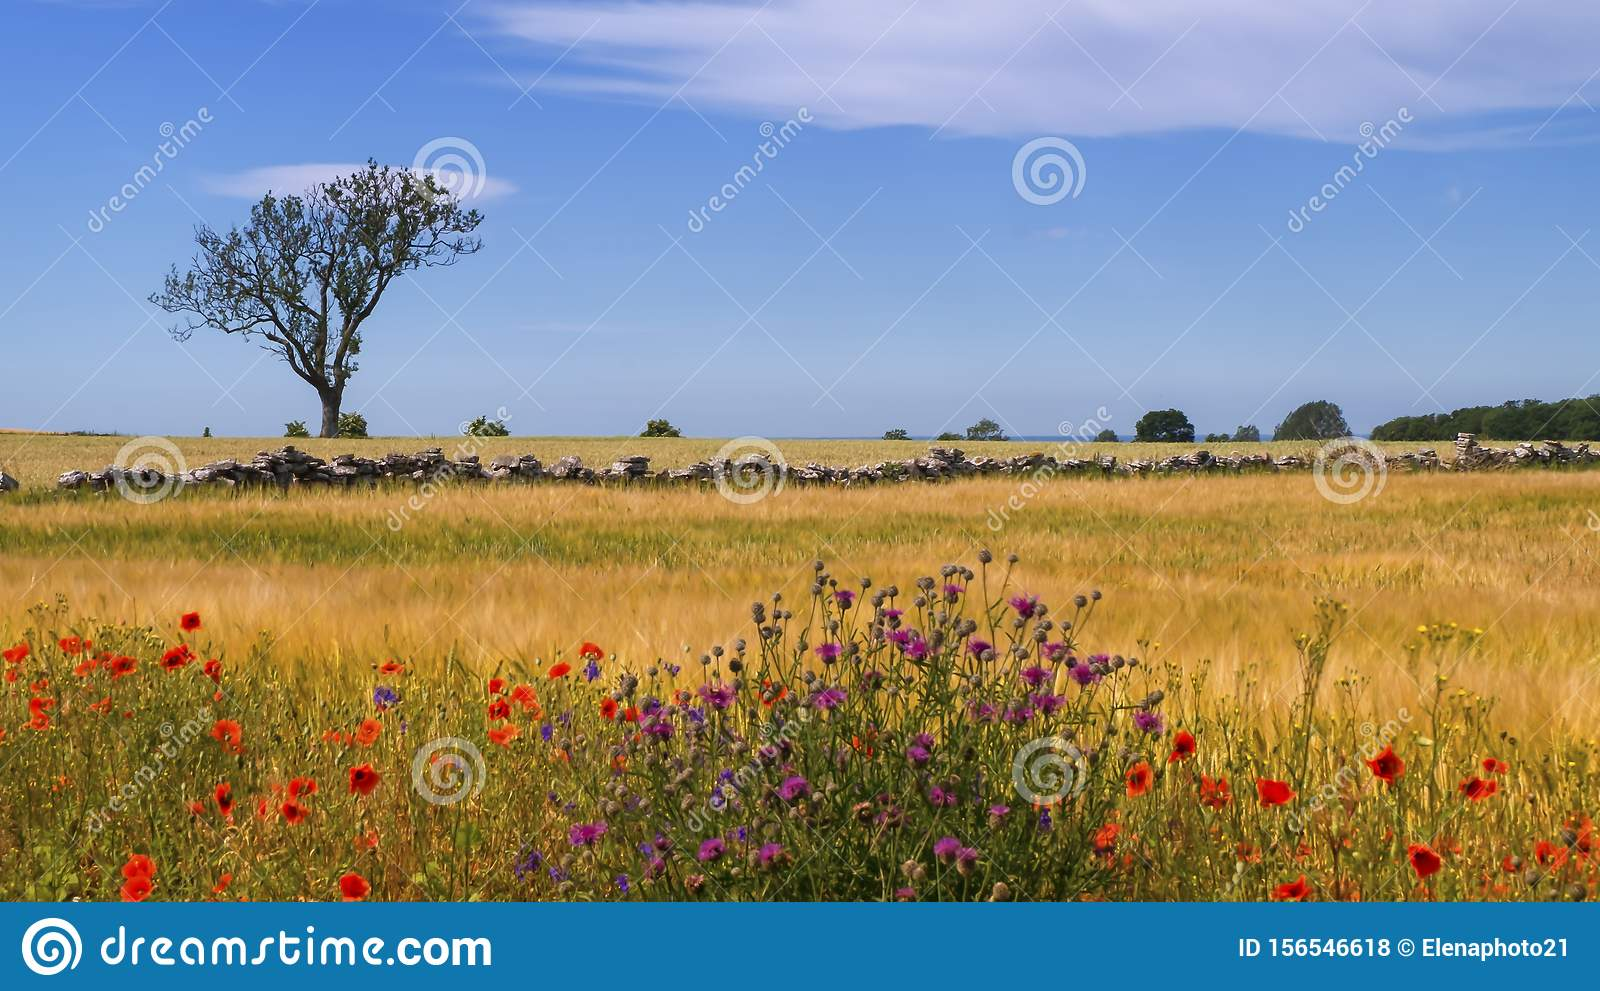 Peaceful landscape by beautiful day in Oland island, Sweden